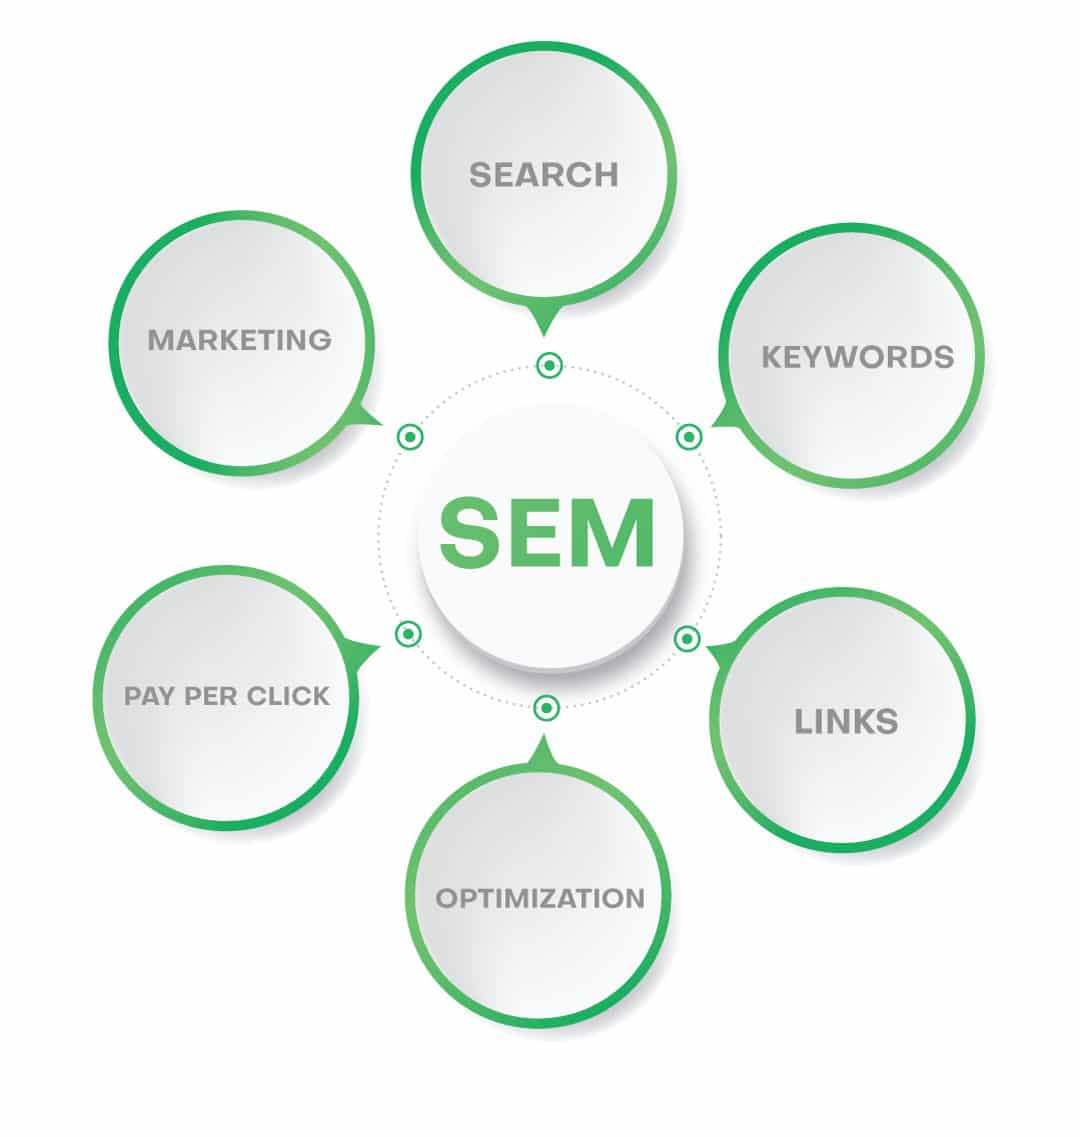 Illustration of end to end process involved in Search Engine Marketing